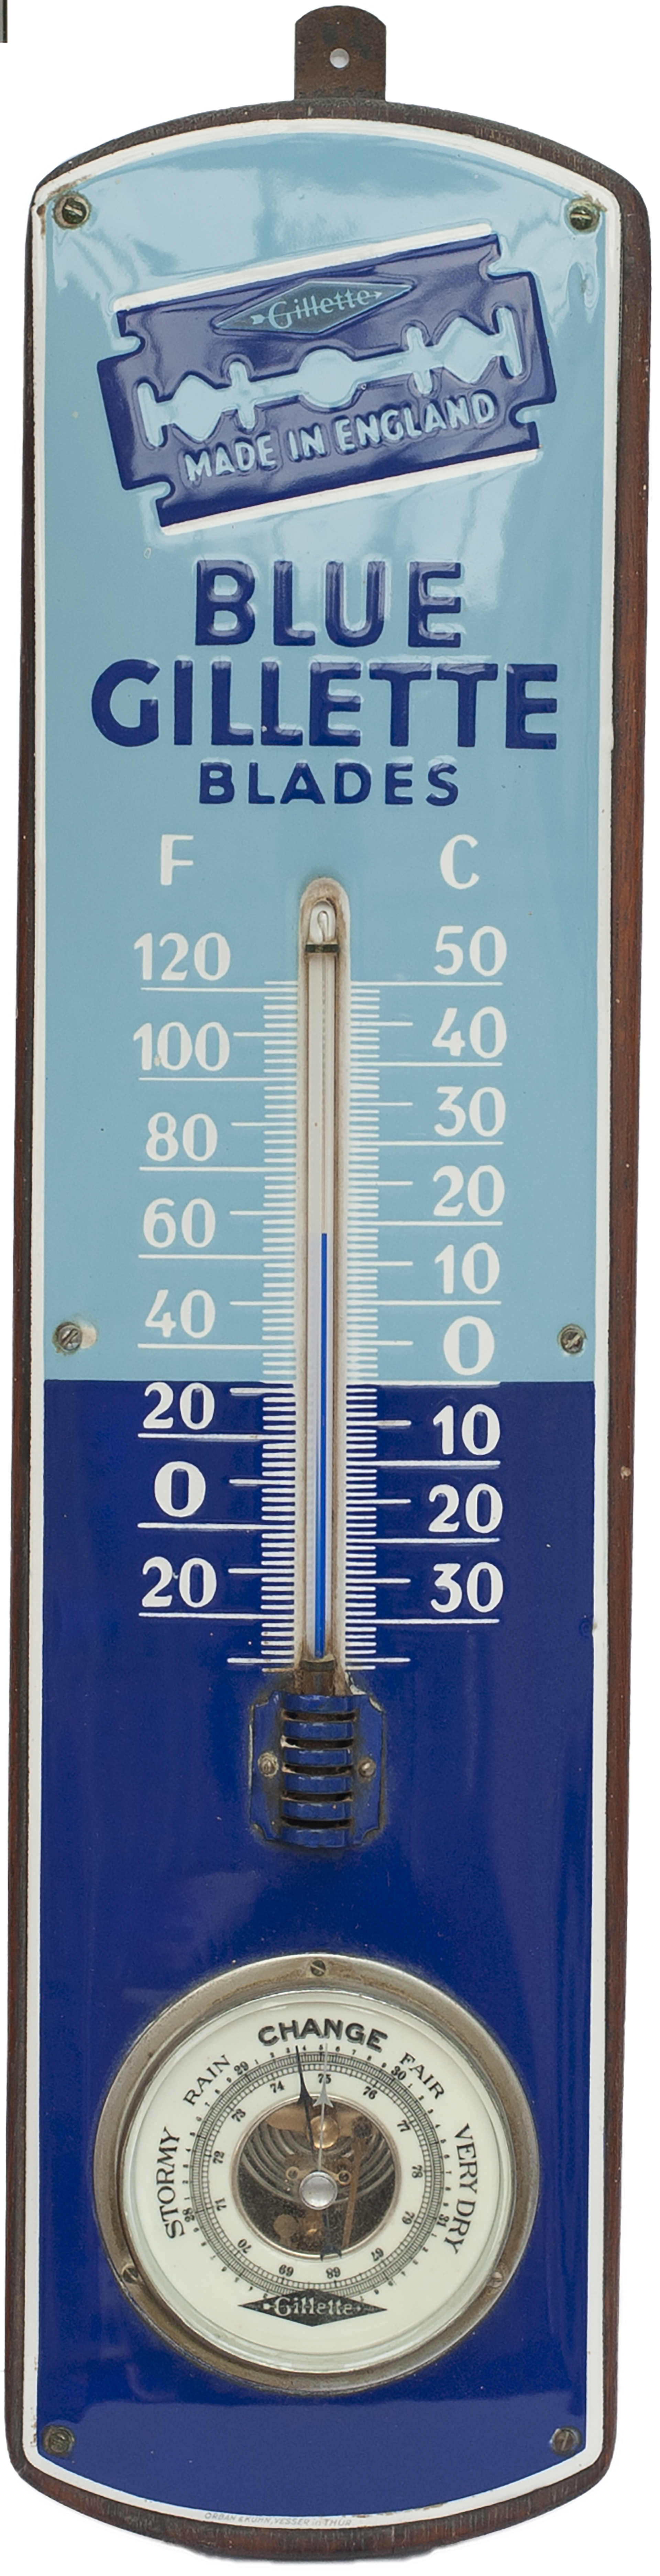 Advertising Enamel Thermometer And Barometer BLUE